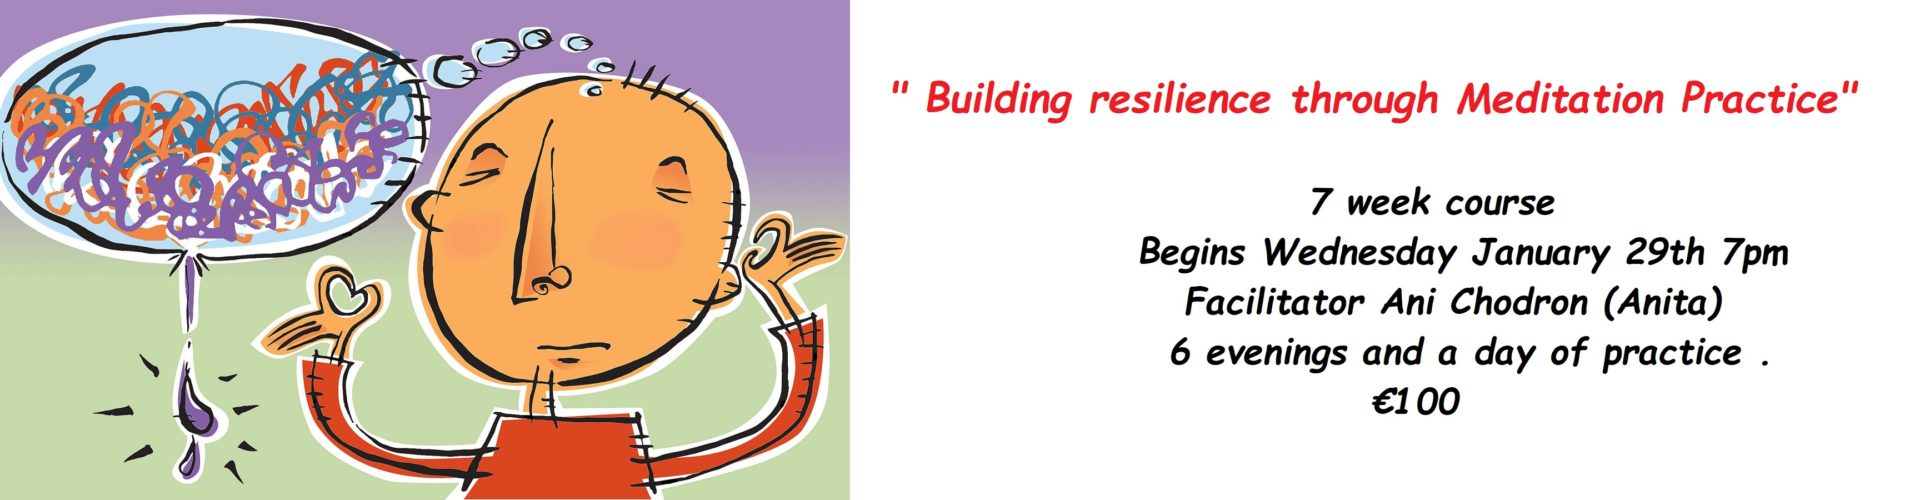 Building resilience throughMeditation Practice – 7 week course